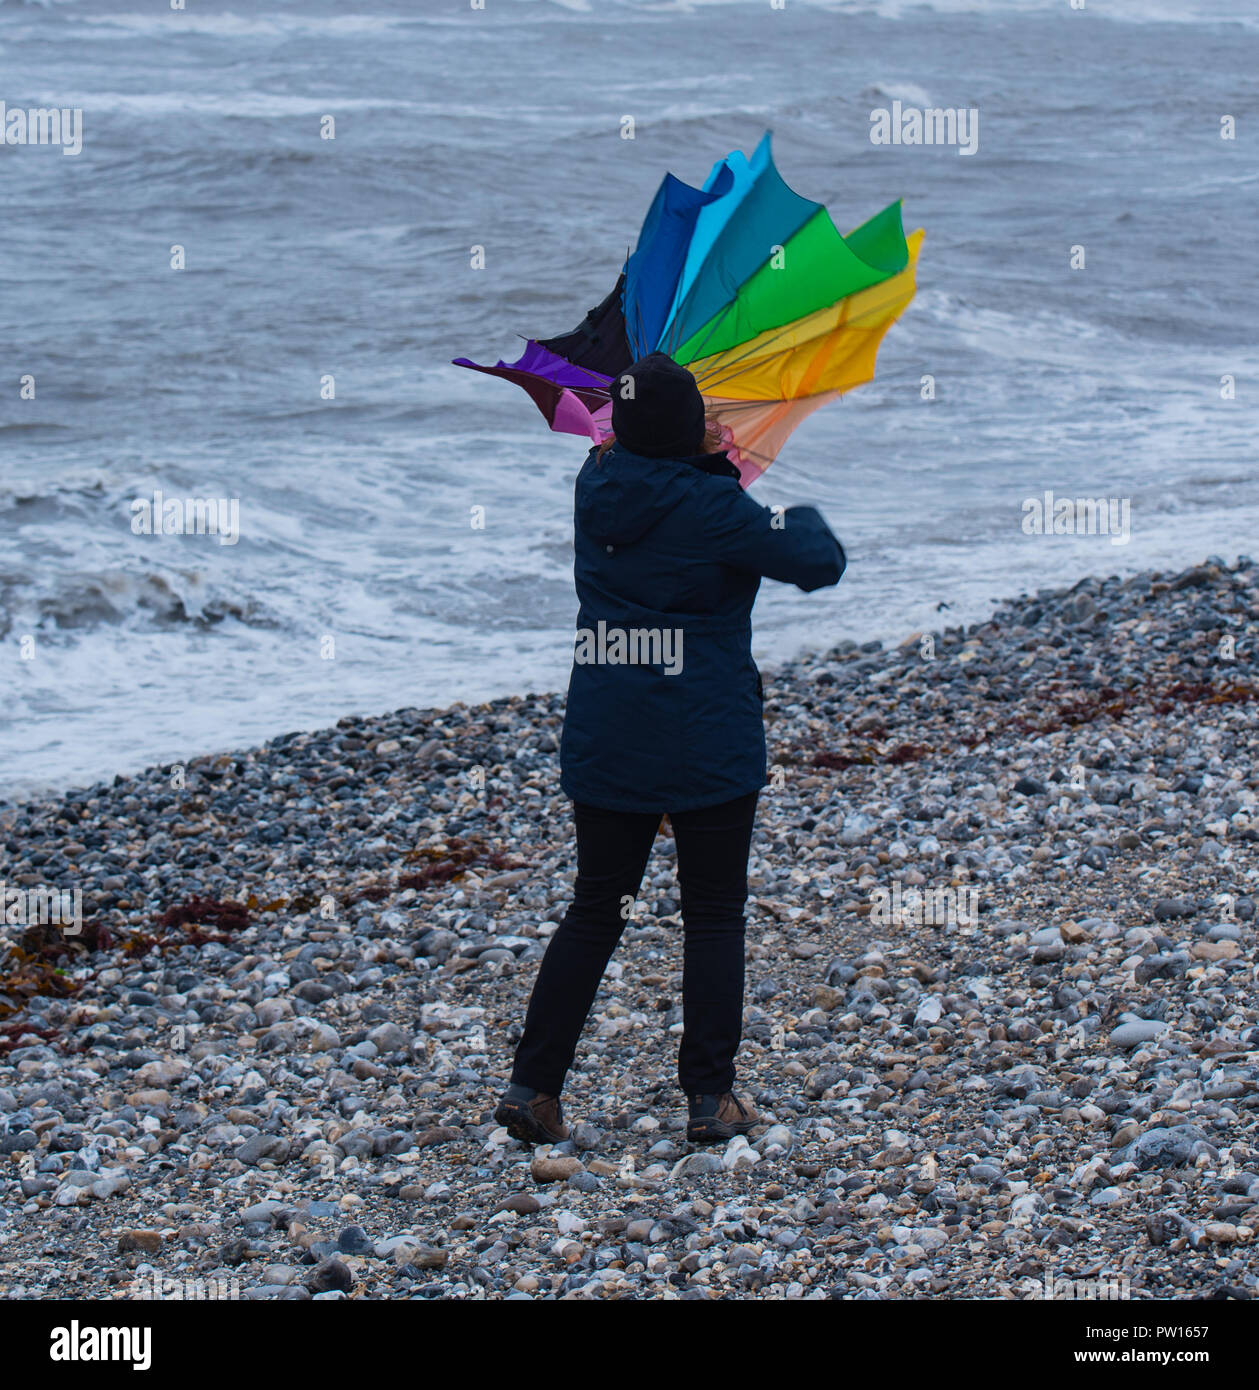 Lyme Regis, Dorset, UK. 11th October 2018.  UK Weather:   A woman battles with an umbrella on the beach as gusty high winds and outbreaks of rain hit the coastal resort of Lyme Regis ahead of Storm Callum.  Credit: Celia McMahon/Alamy Live News - Stock Image